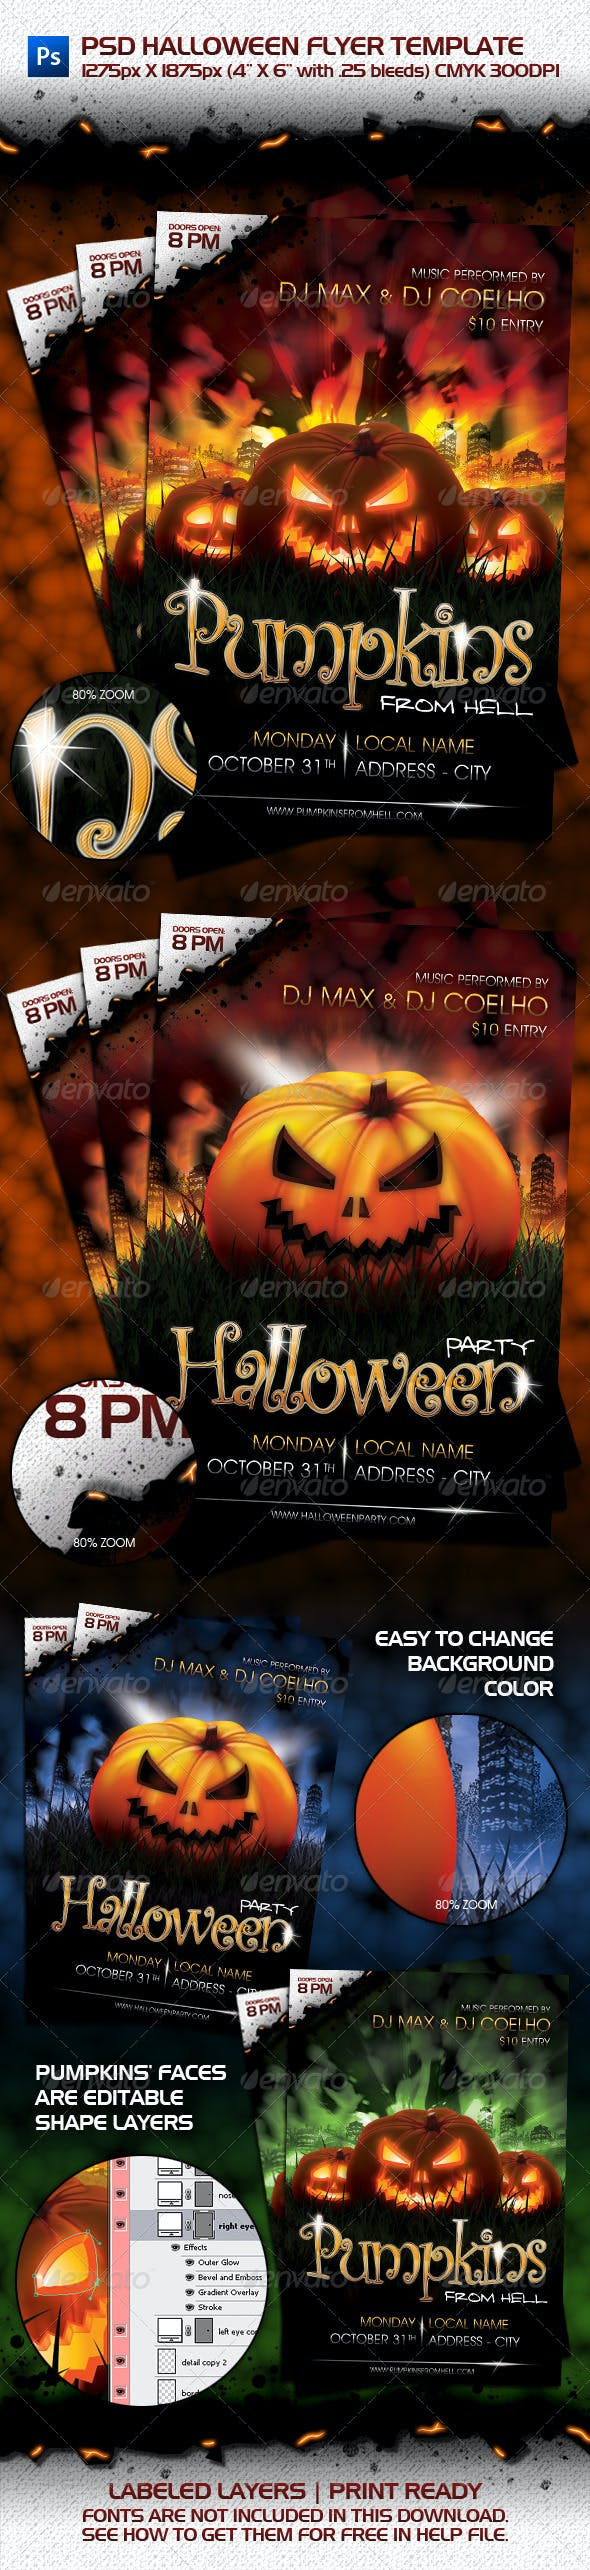 psd halloween flyer template by maxwellcoelho graphicriver